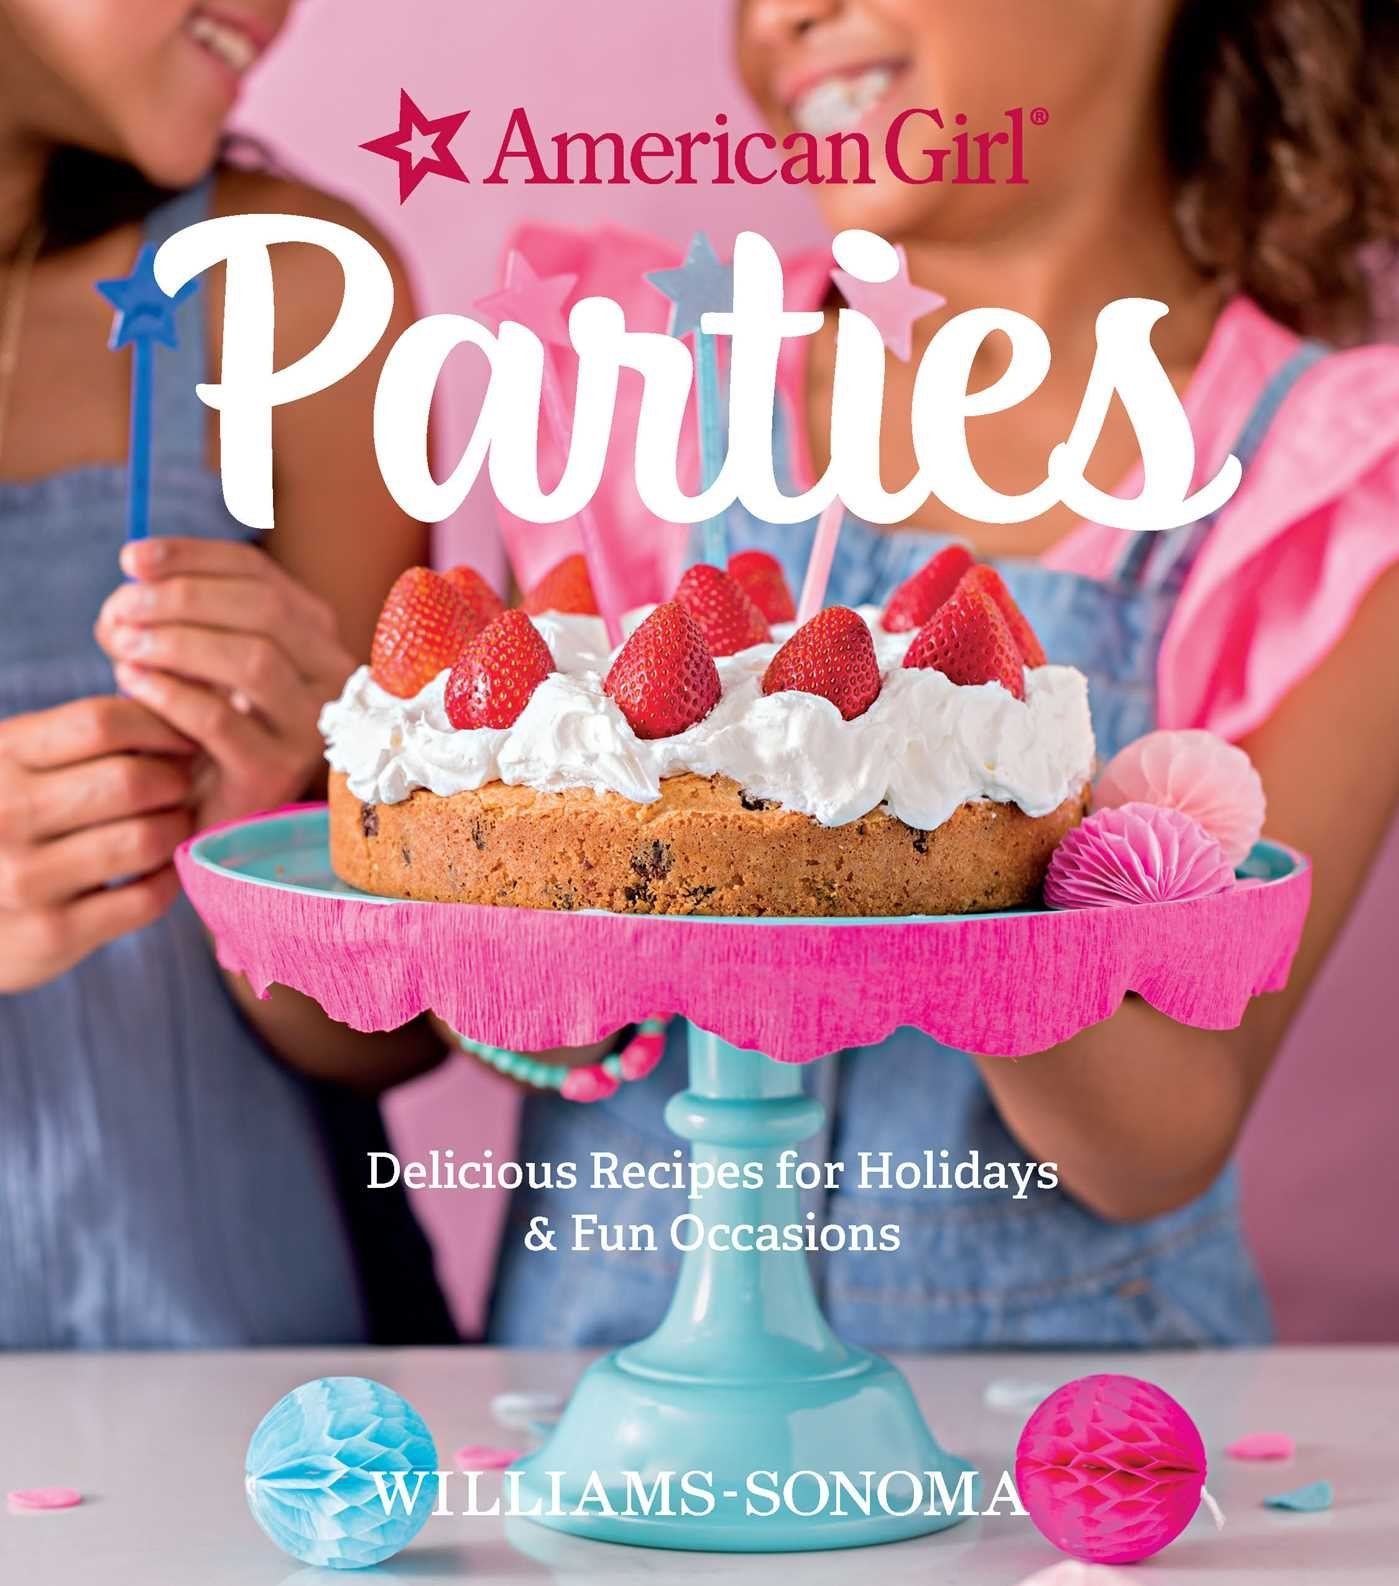 American Girl Parties (Williams-Sonoma)